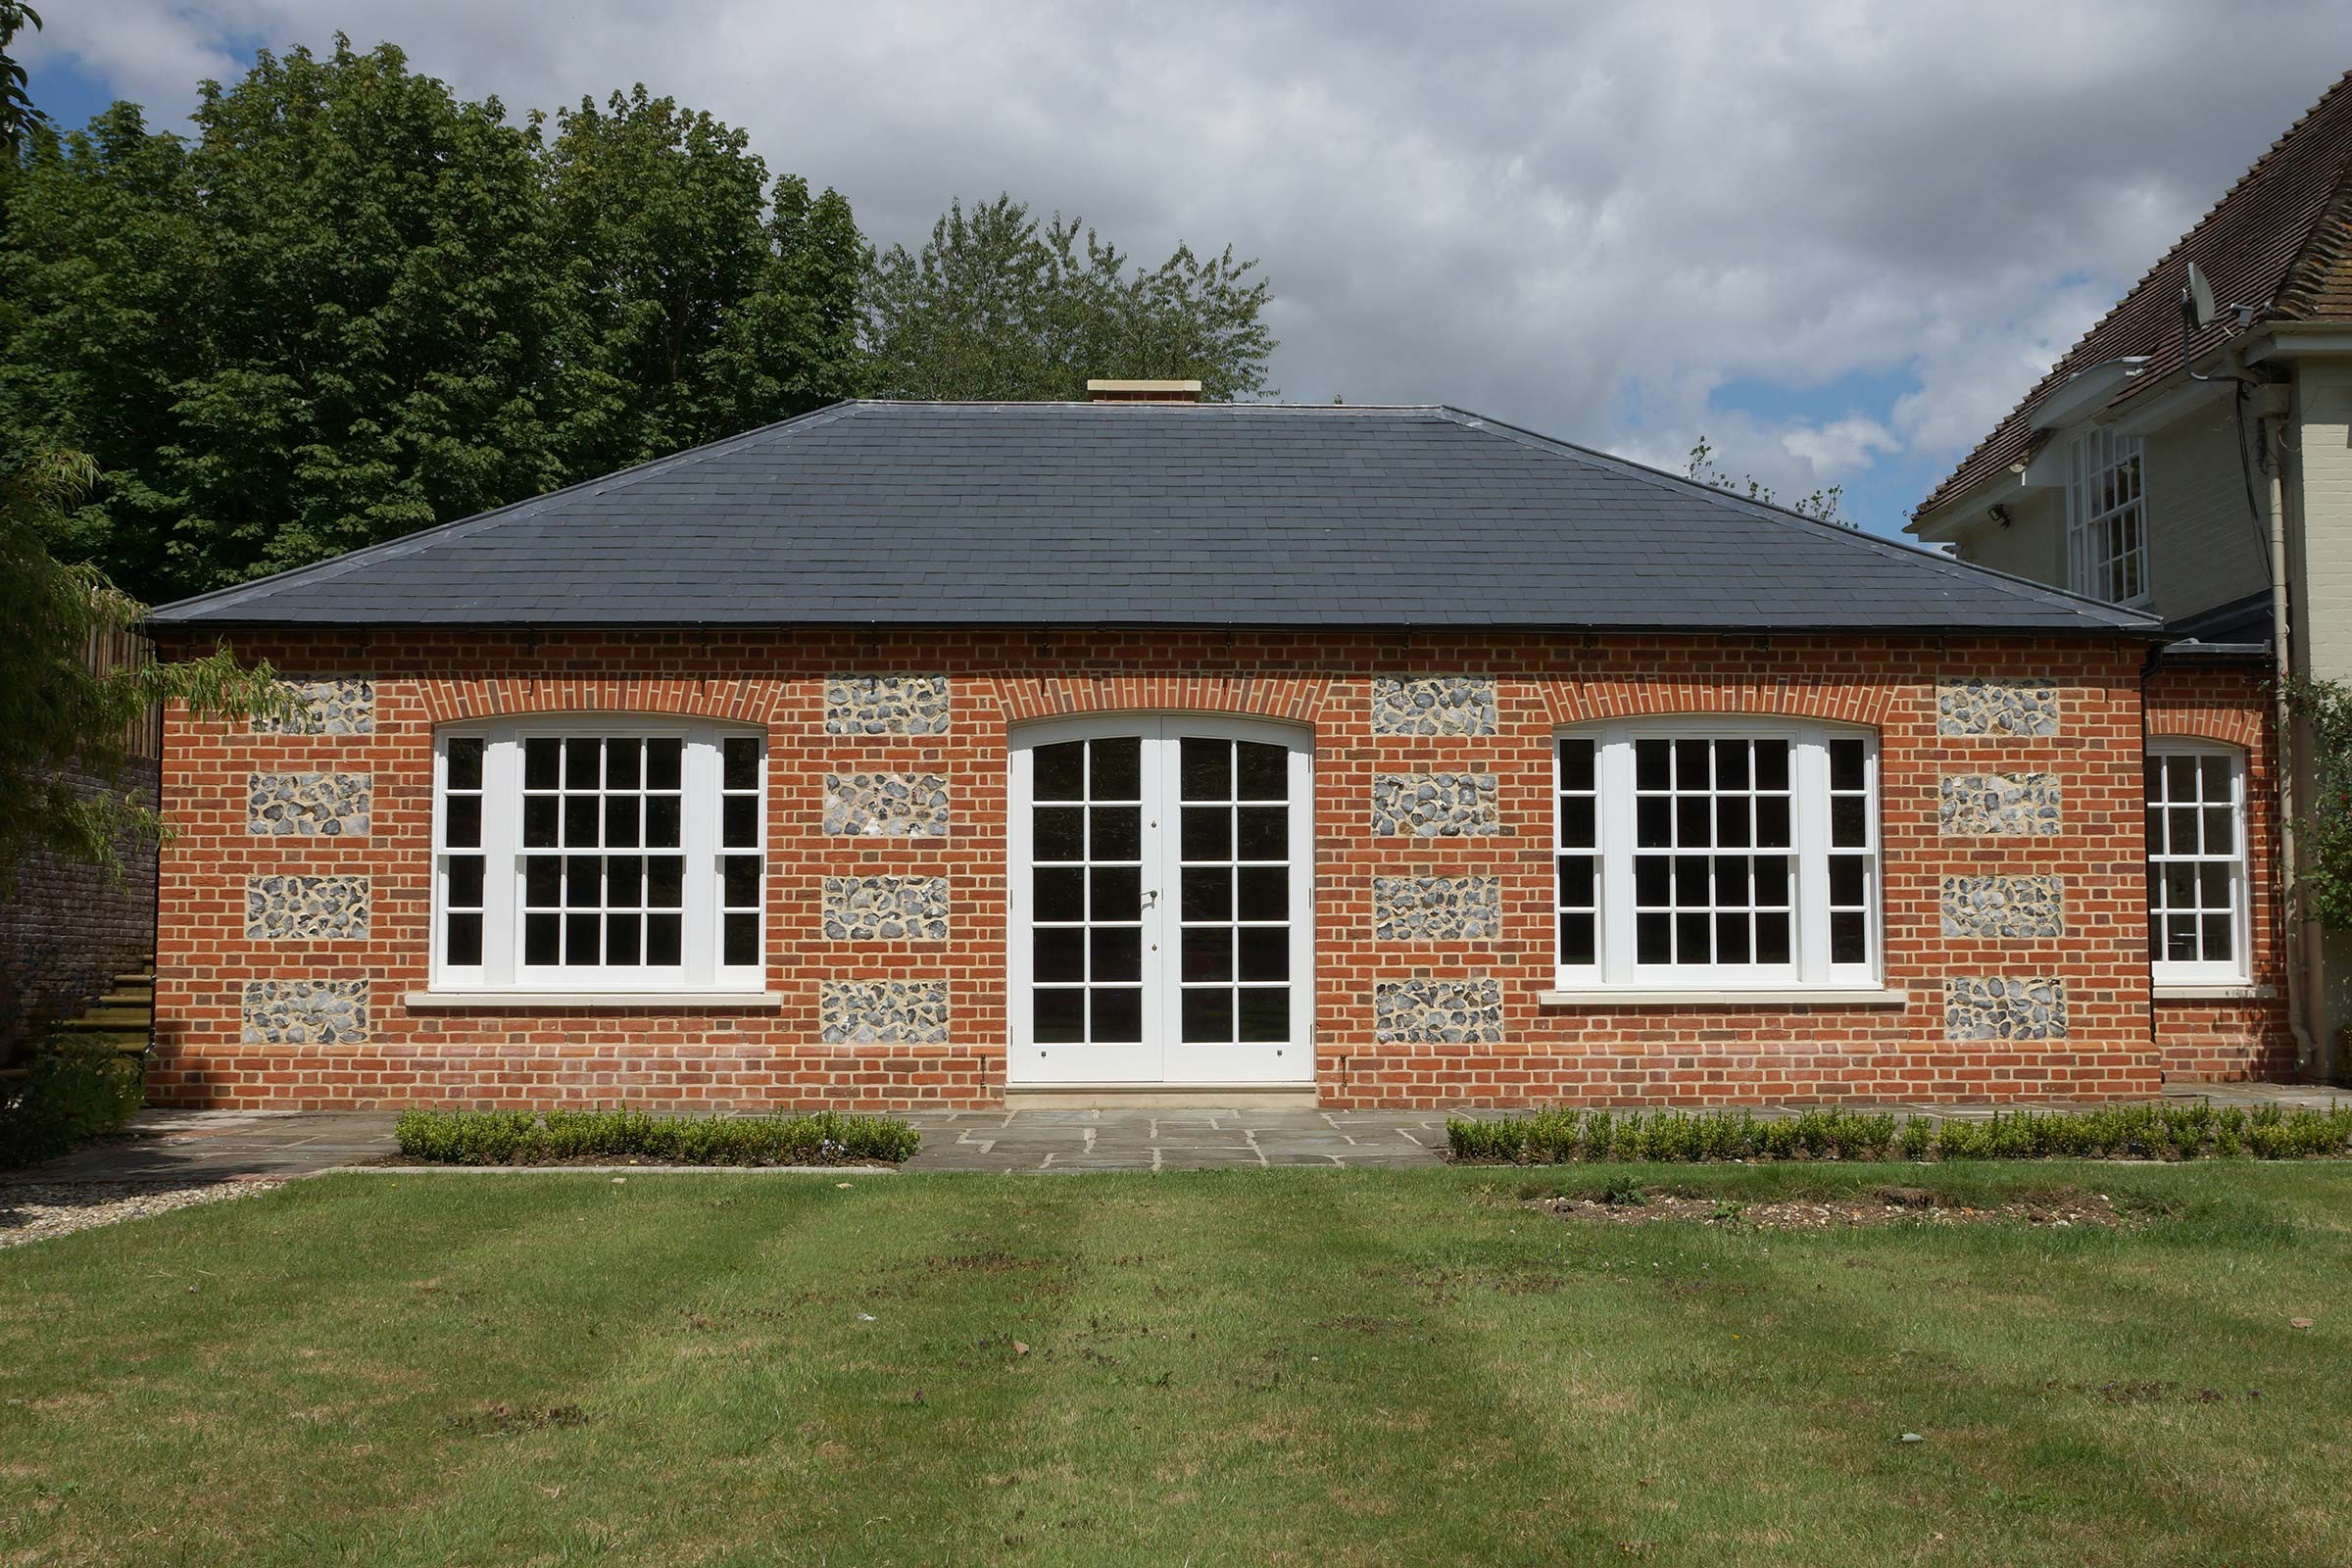 New library extension to a house in Wiltshire